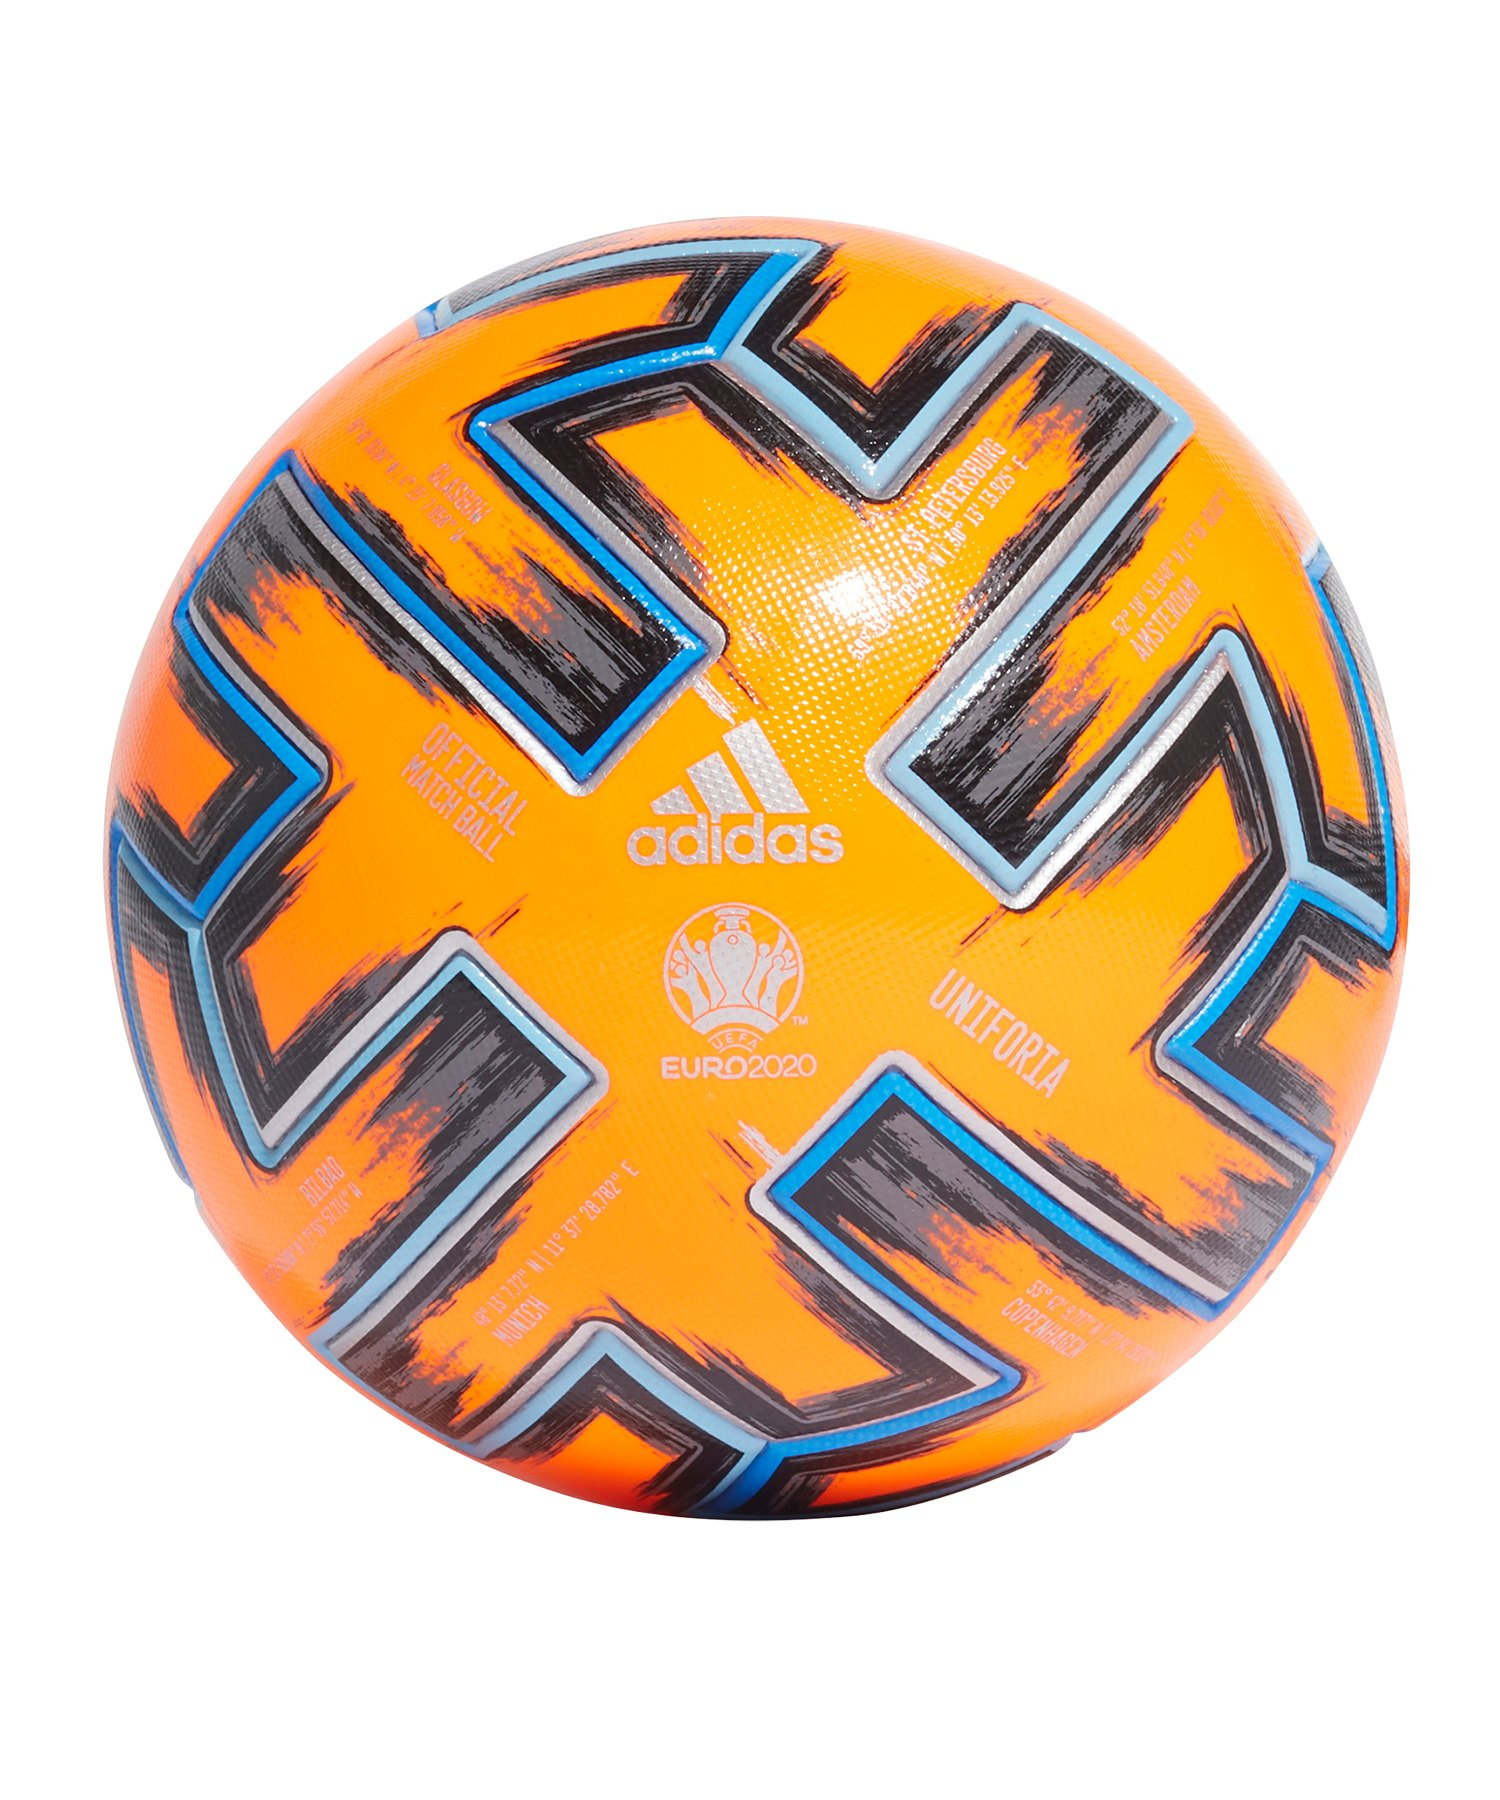 adidas Pro Uniforia Spielball Orange - orange